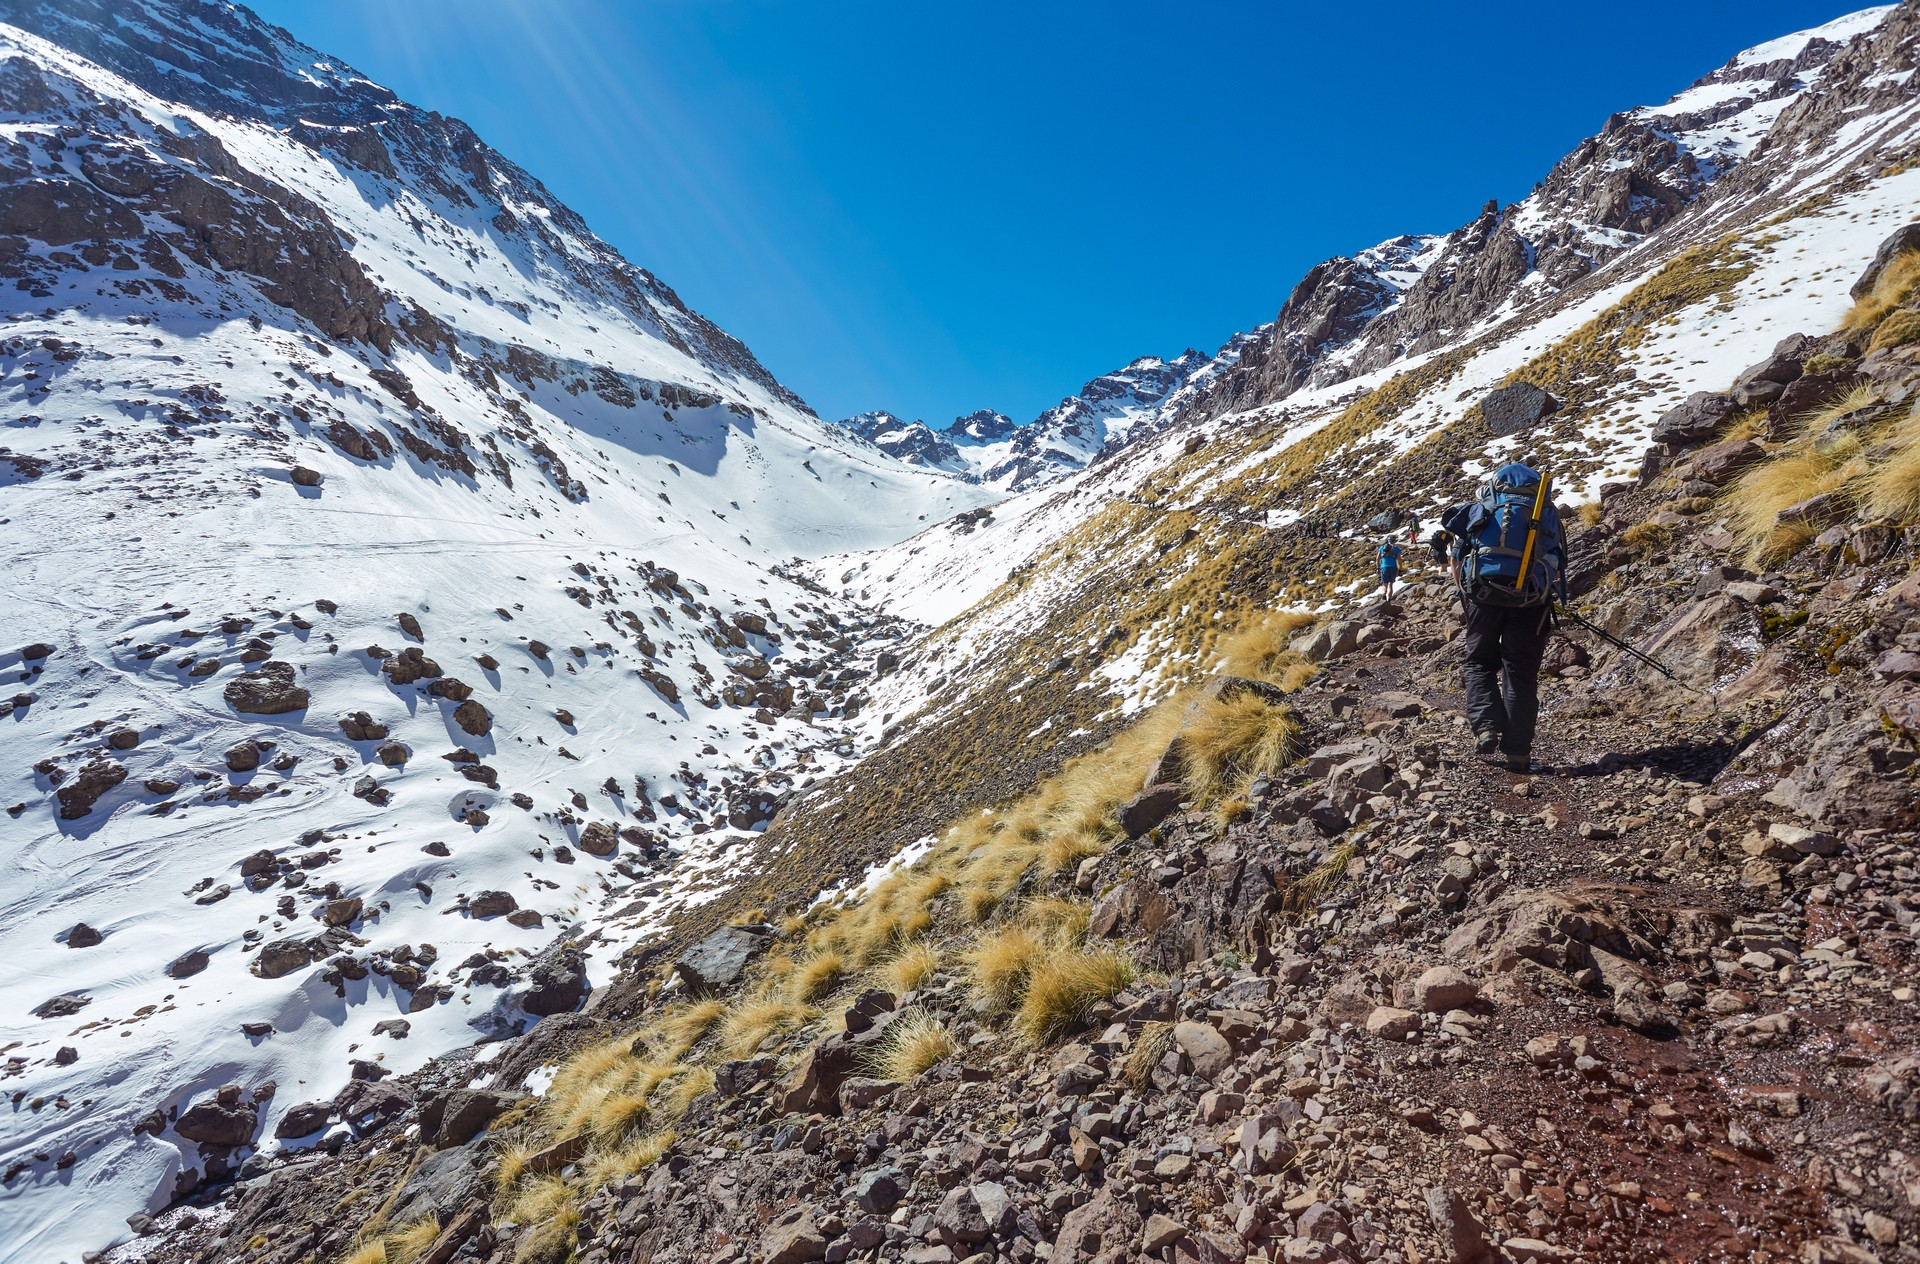 A hiker on their way to the summit of Mount Toubkal in Morocco's High Atlas